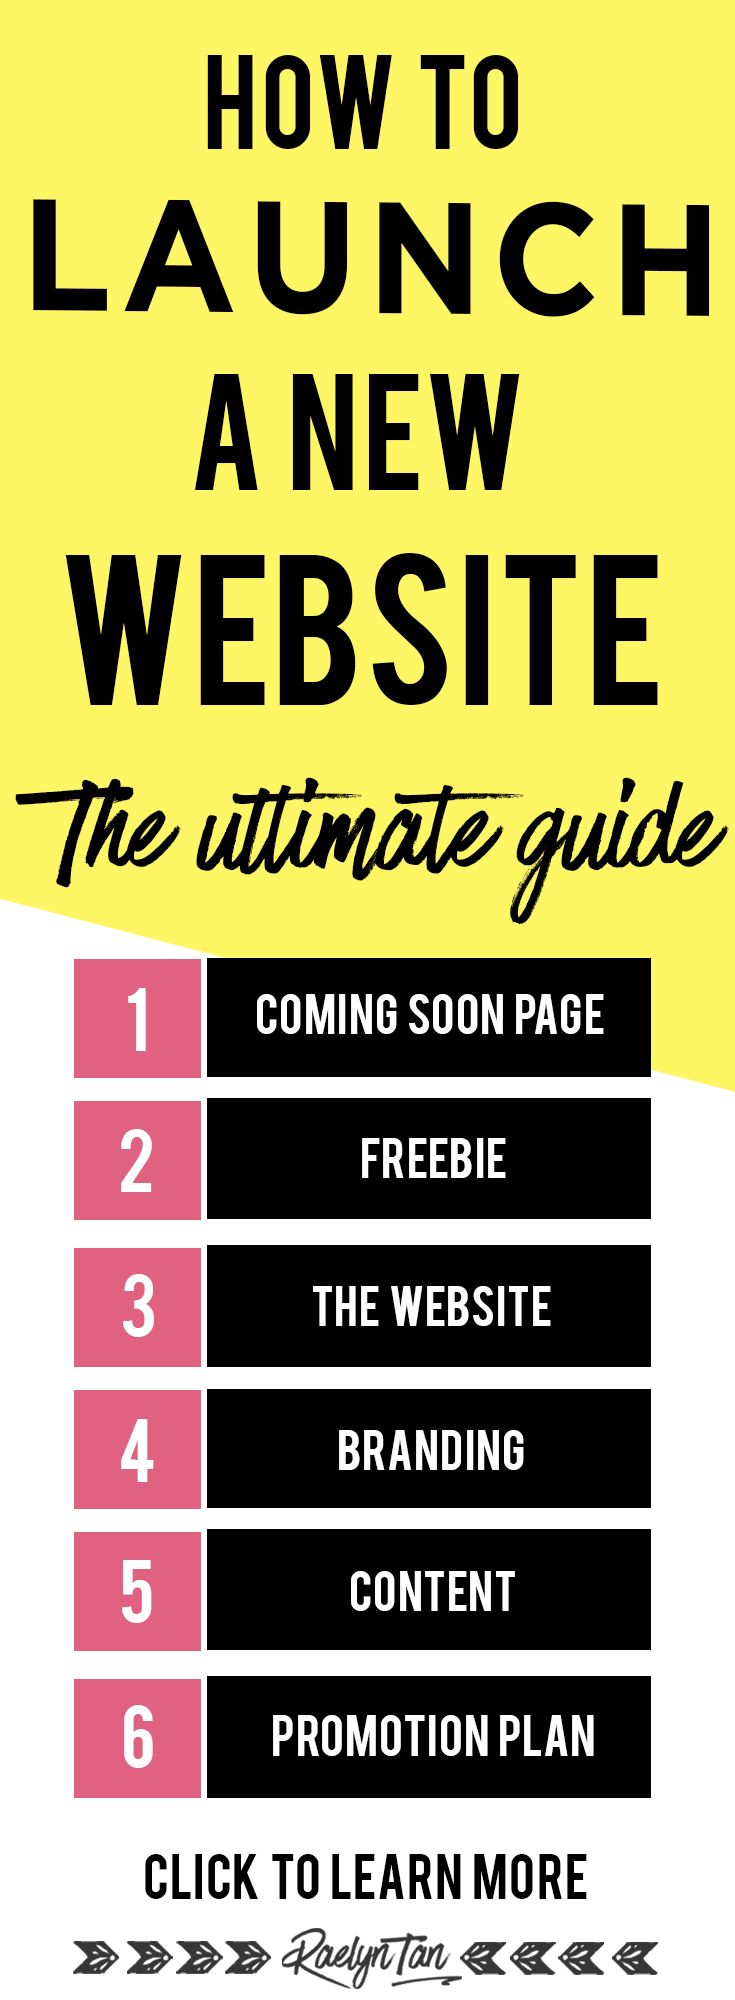 How to launch a brand new website: Launch ideas and tips for your business! Marketing, social media, how to have a successful launch (